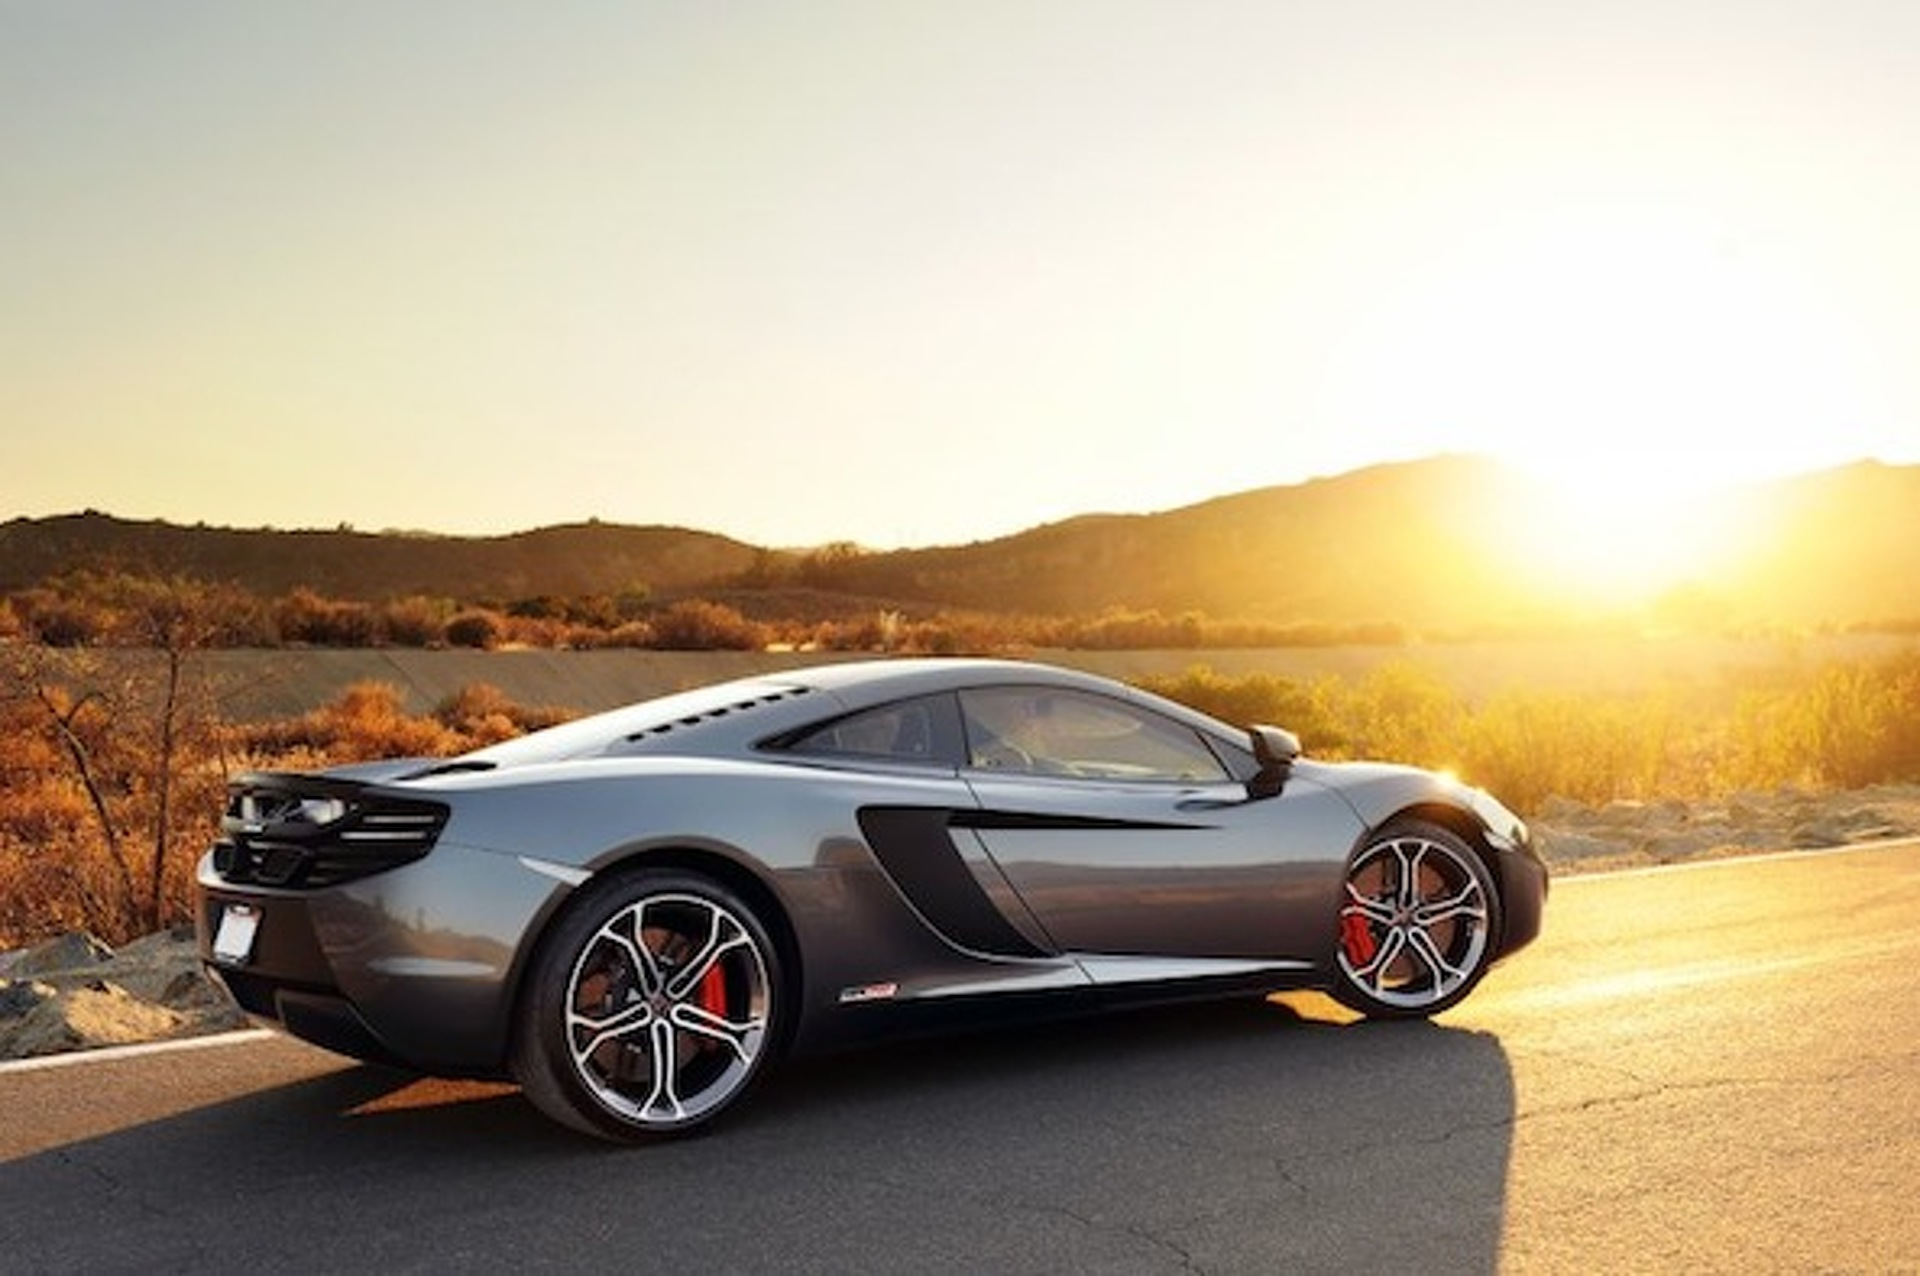 Hennessey Boosts the McLaren MP4-12C to 700HP